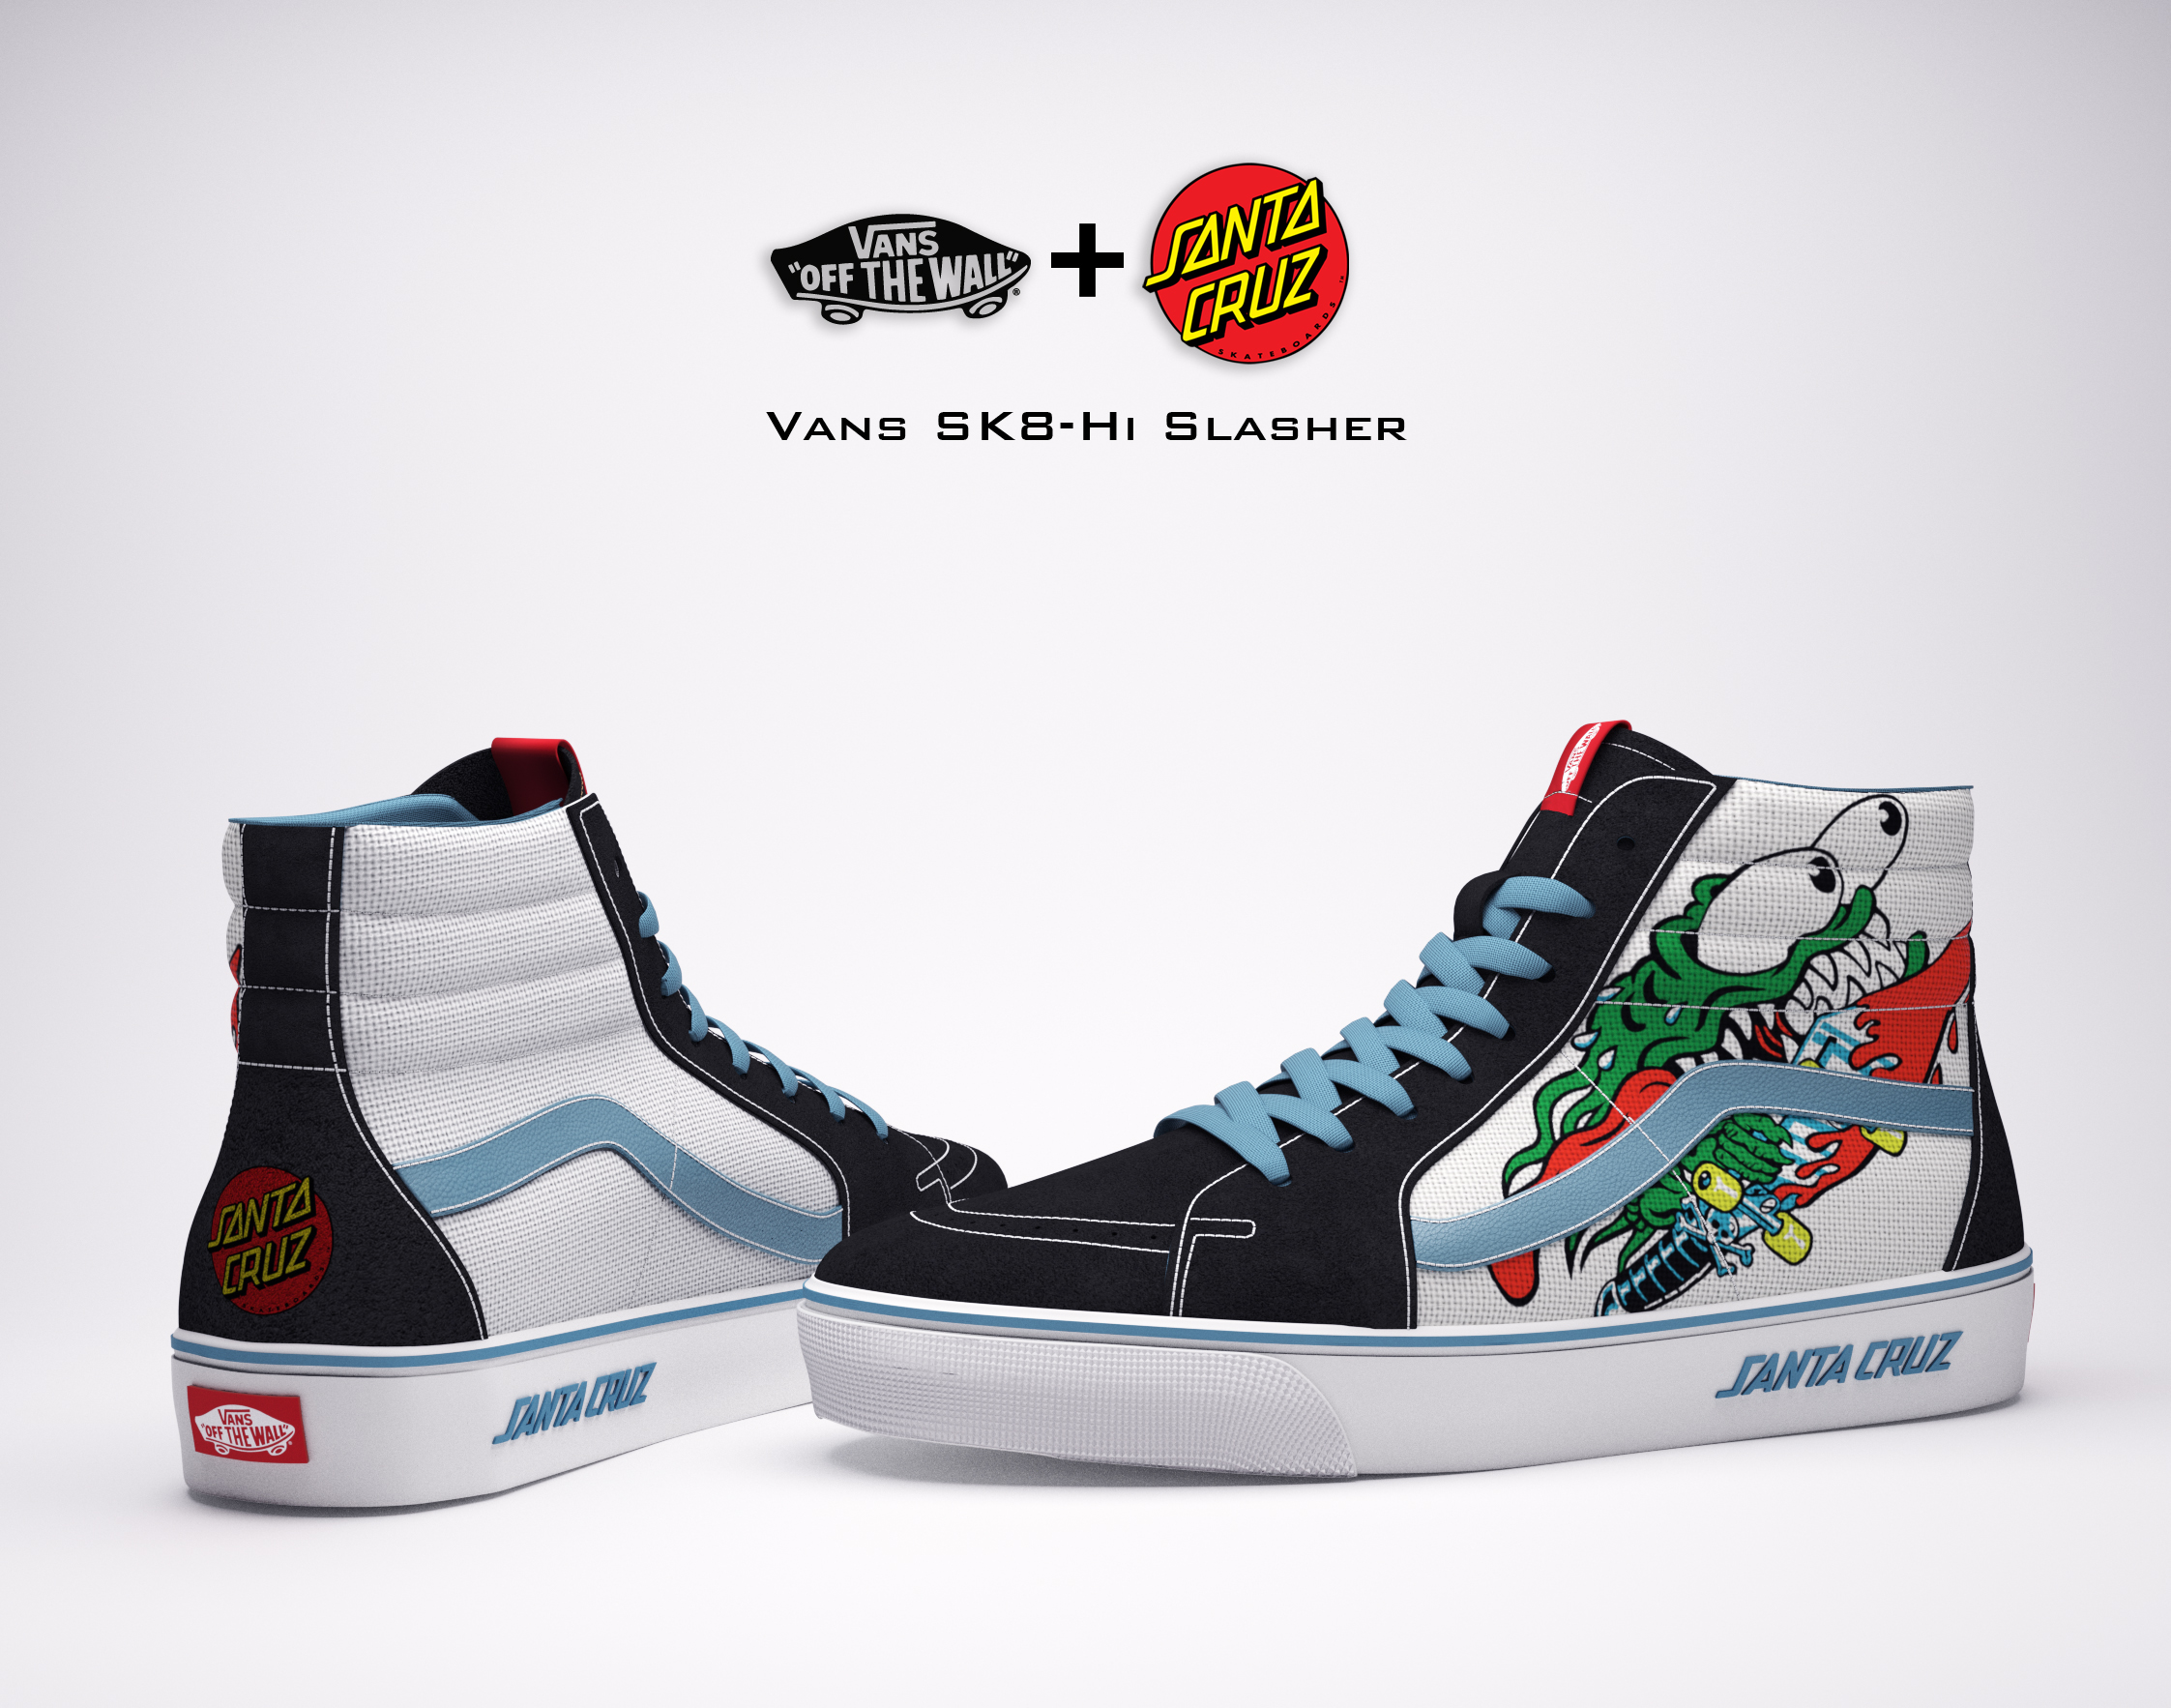 6a910bc525 Vans   Santa Cruz Skateboards Collaboration on Behance